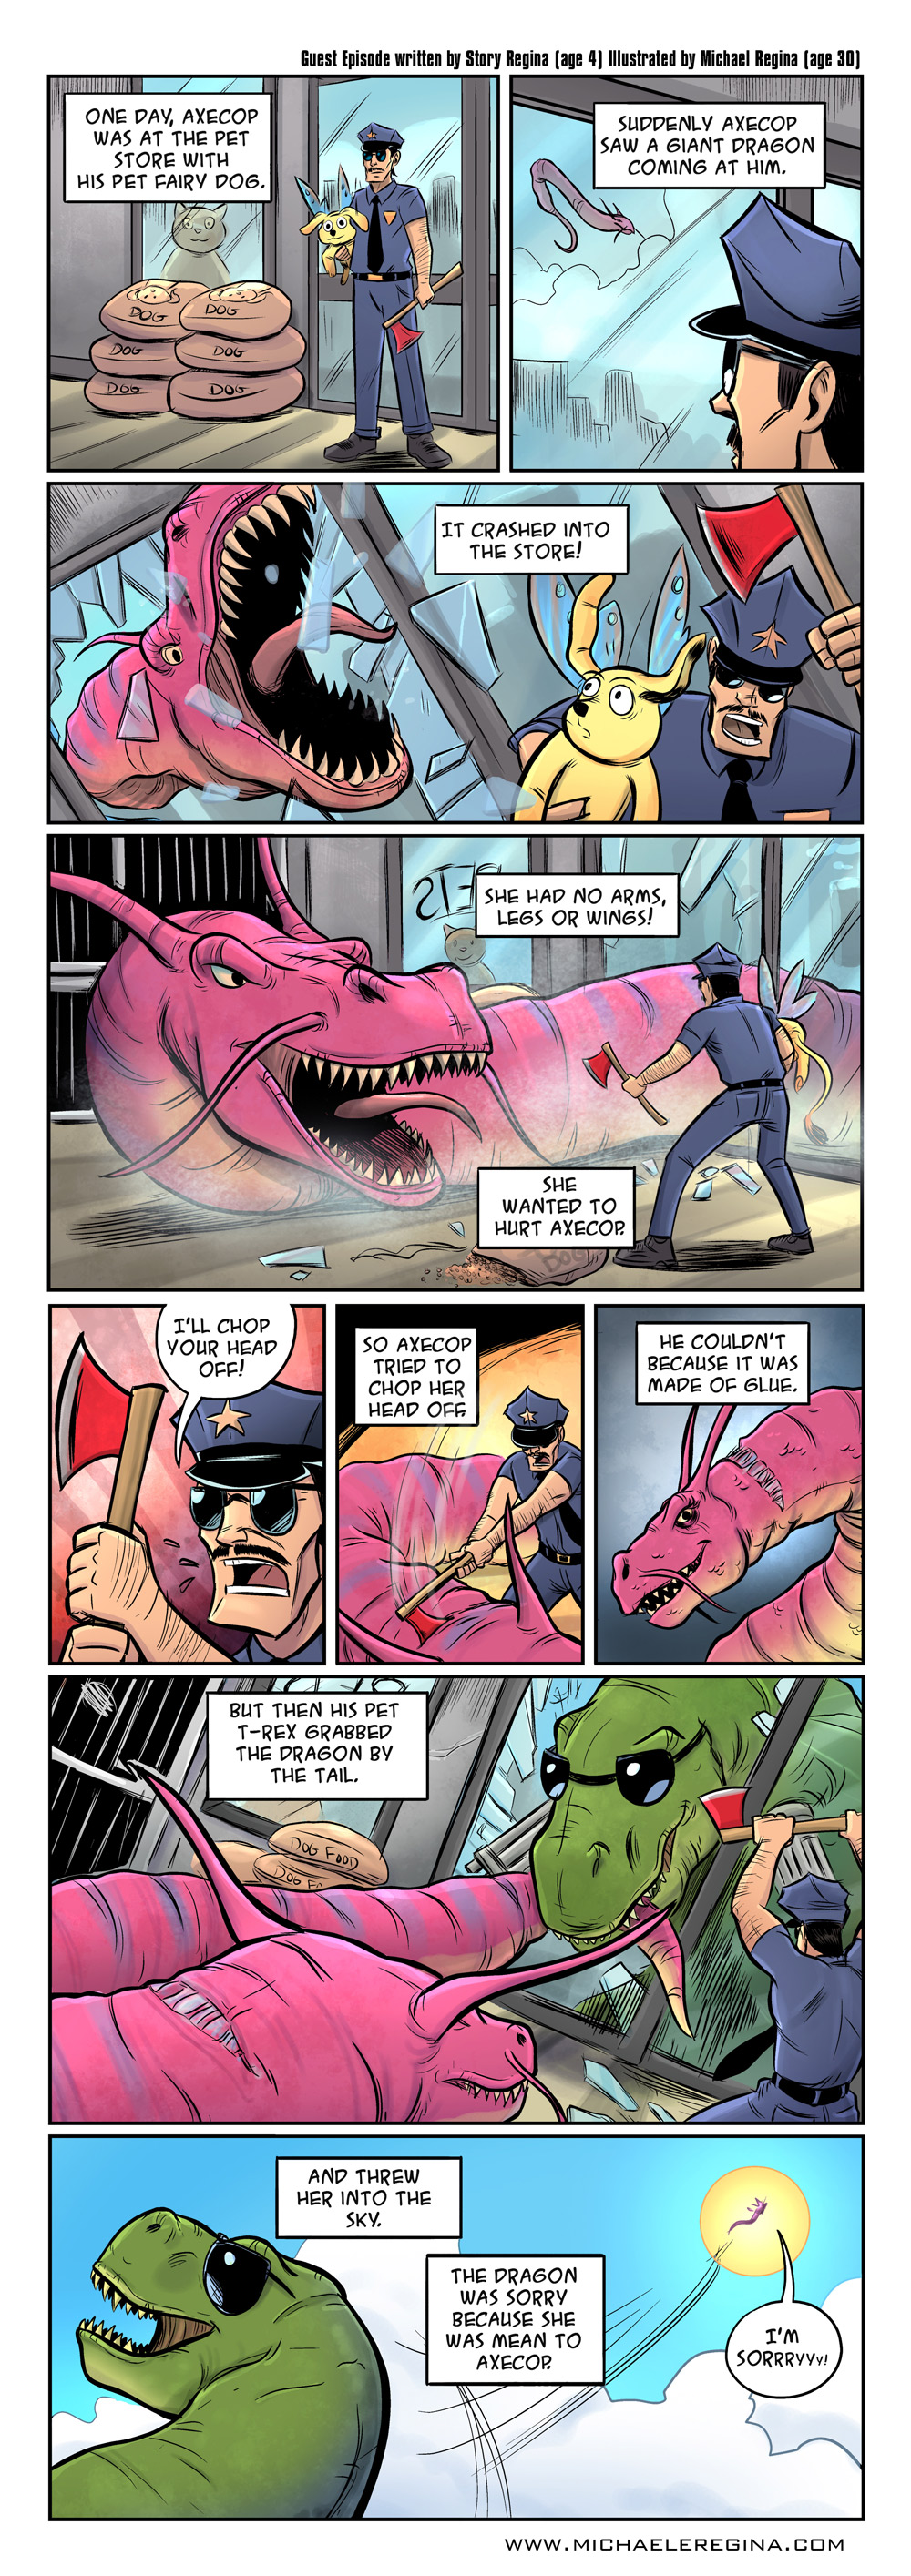 ASK-AXE-COP-GS39